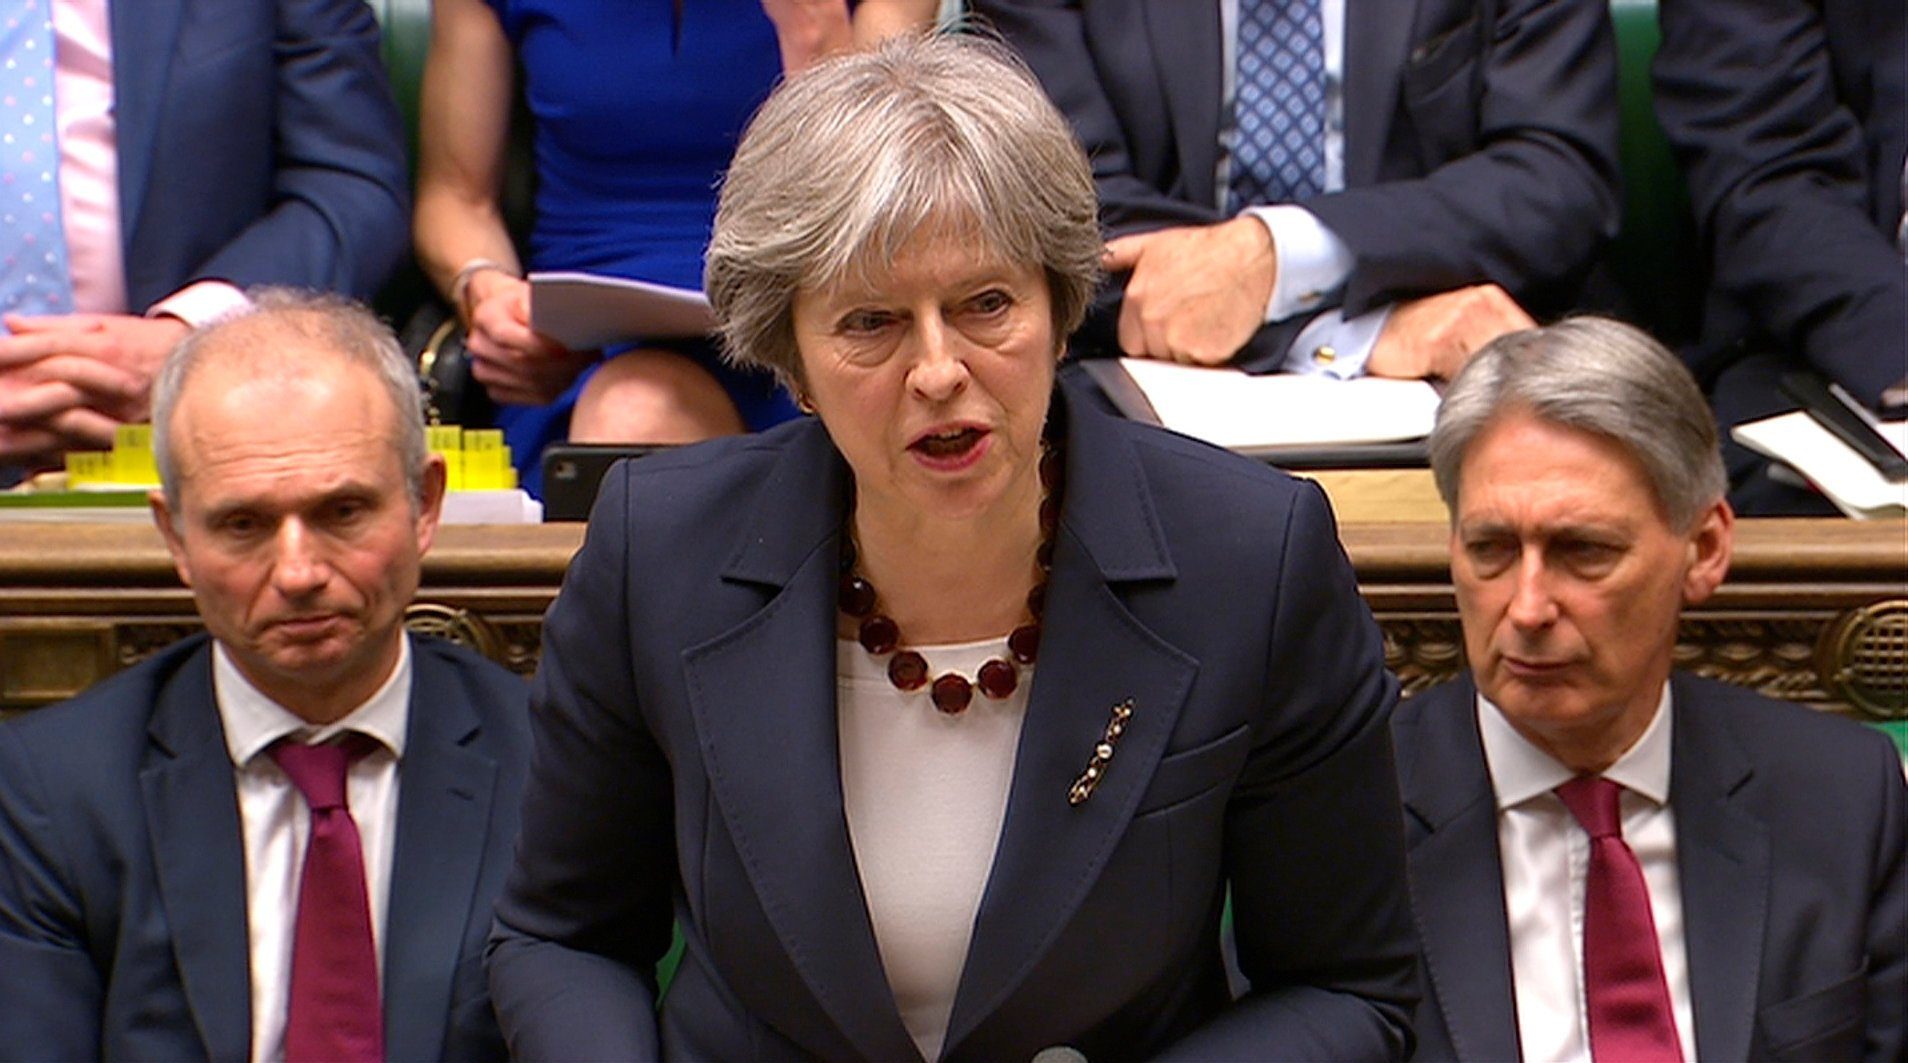 Britain's Prime Minister Theresa May addresses the House of Commons on her government's reaction to the poisoning of former Russian intelligence officer Sergei Skripal and his daughter Yulia in Salisbury, in London, March 14, 2018.  © REUTERS/ Parliament TV